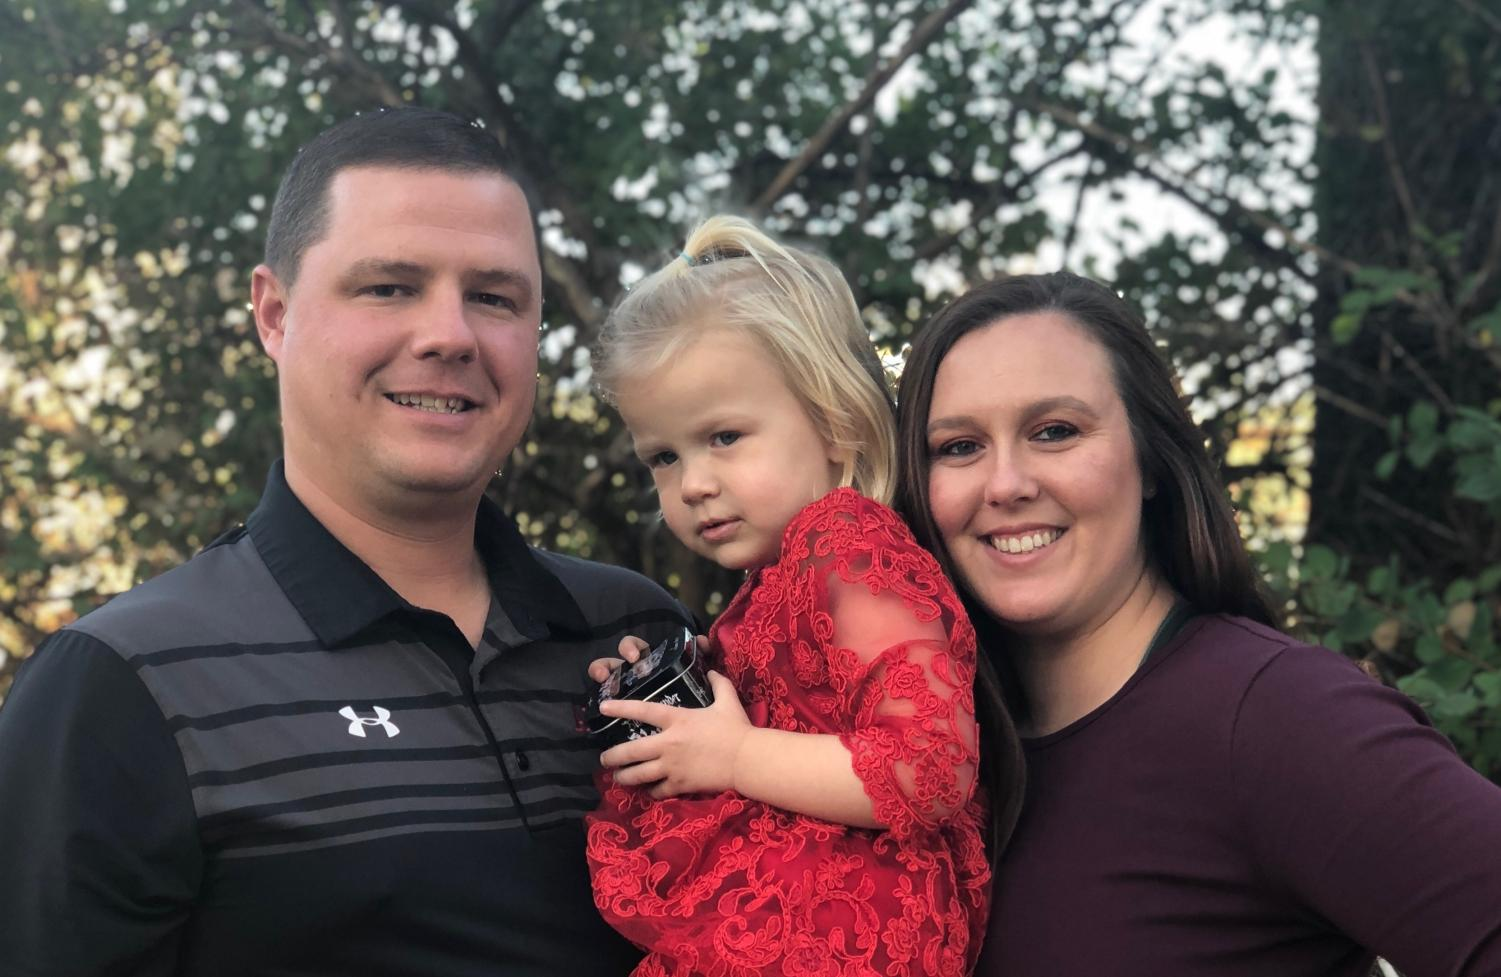 Andy and Whitney Shaw, both head coaches at Allen, pose with their two year old daughter, Tatum.